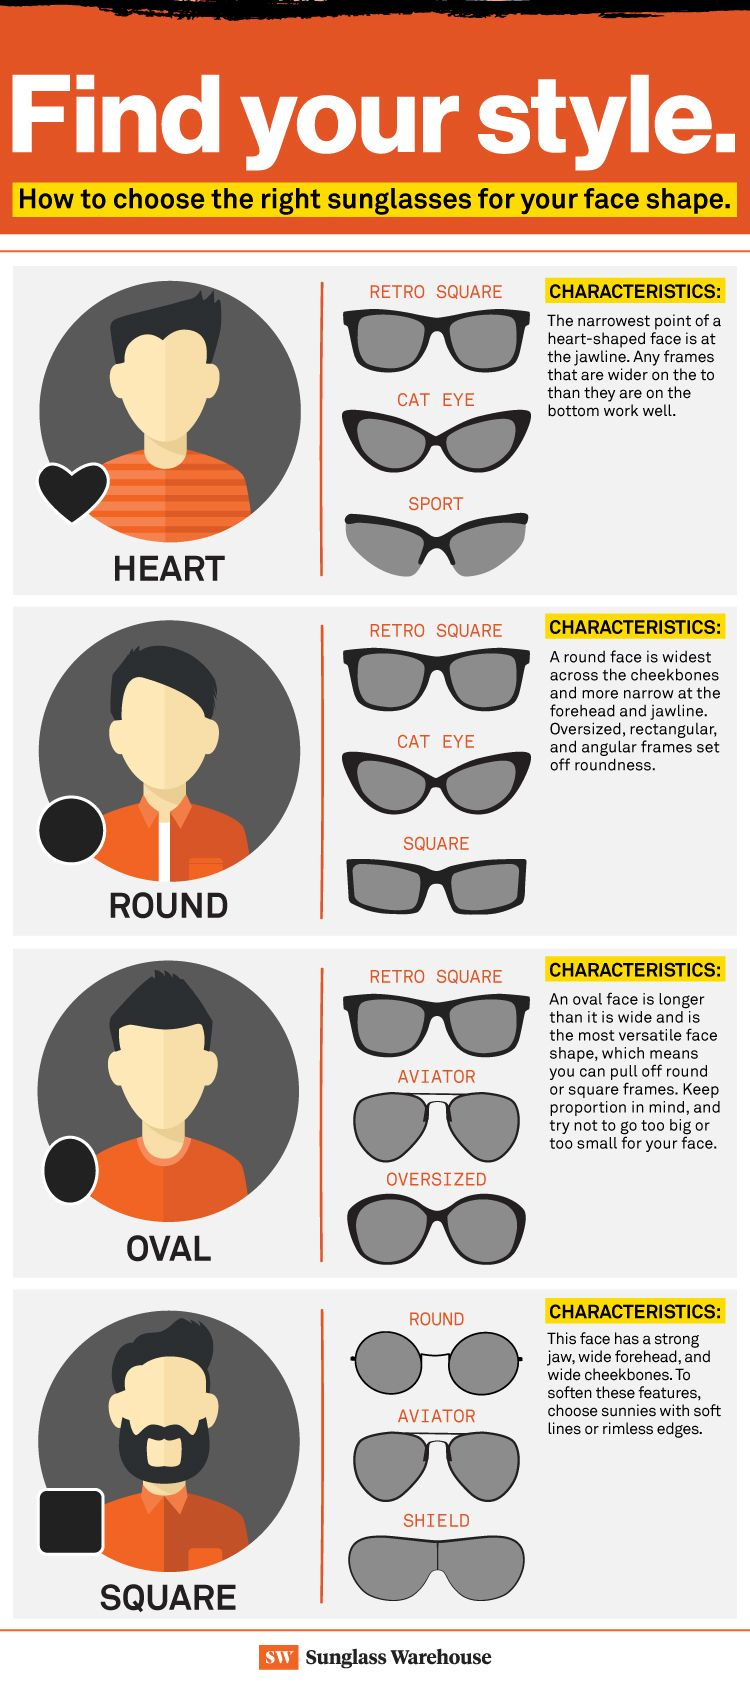 fd4430f7d7 How to Choose the Best Sunglasses for Your Face Shape